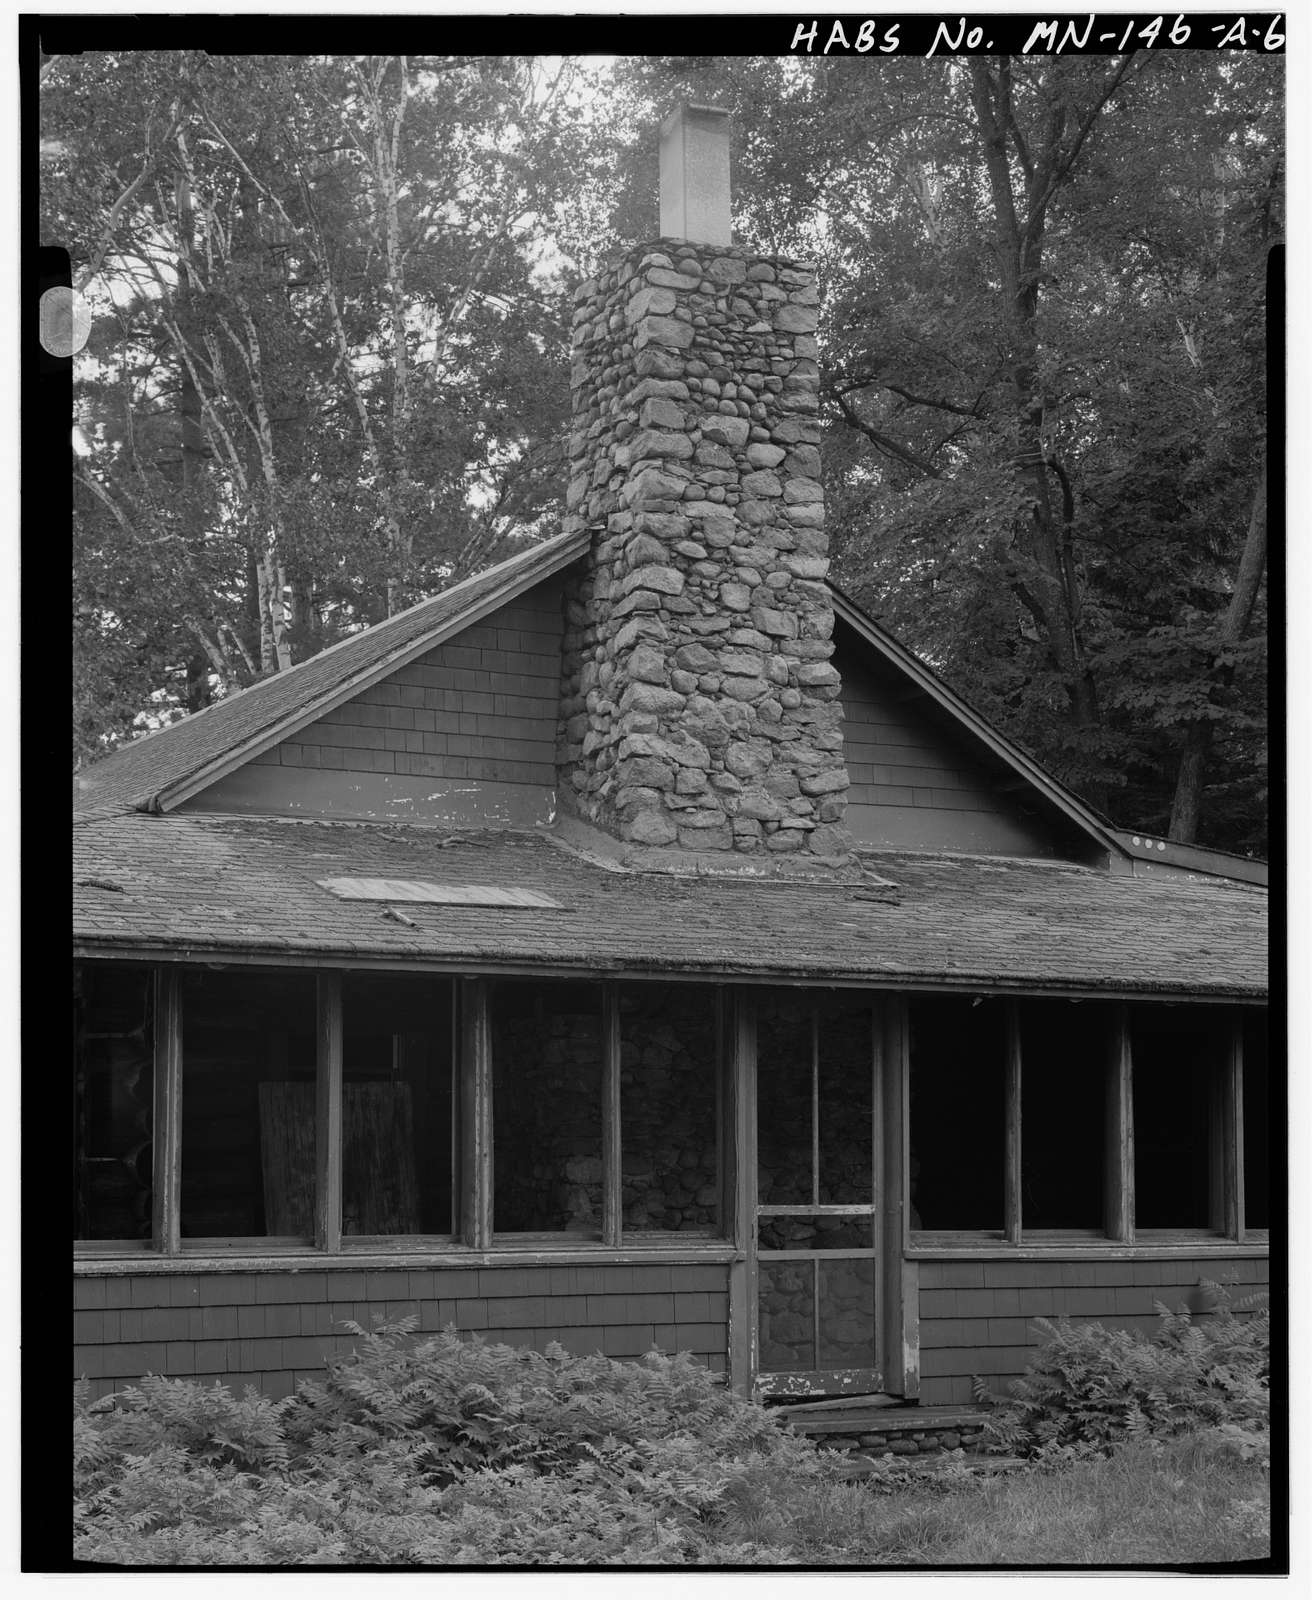 Joyce Estate, Main Cabin, Chippewa National Forest Road 2144, 3 miles north of County Road 335, Grand Rapids, Itasca County, MN